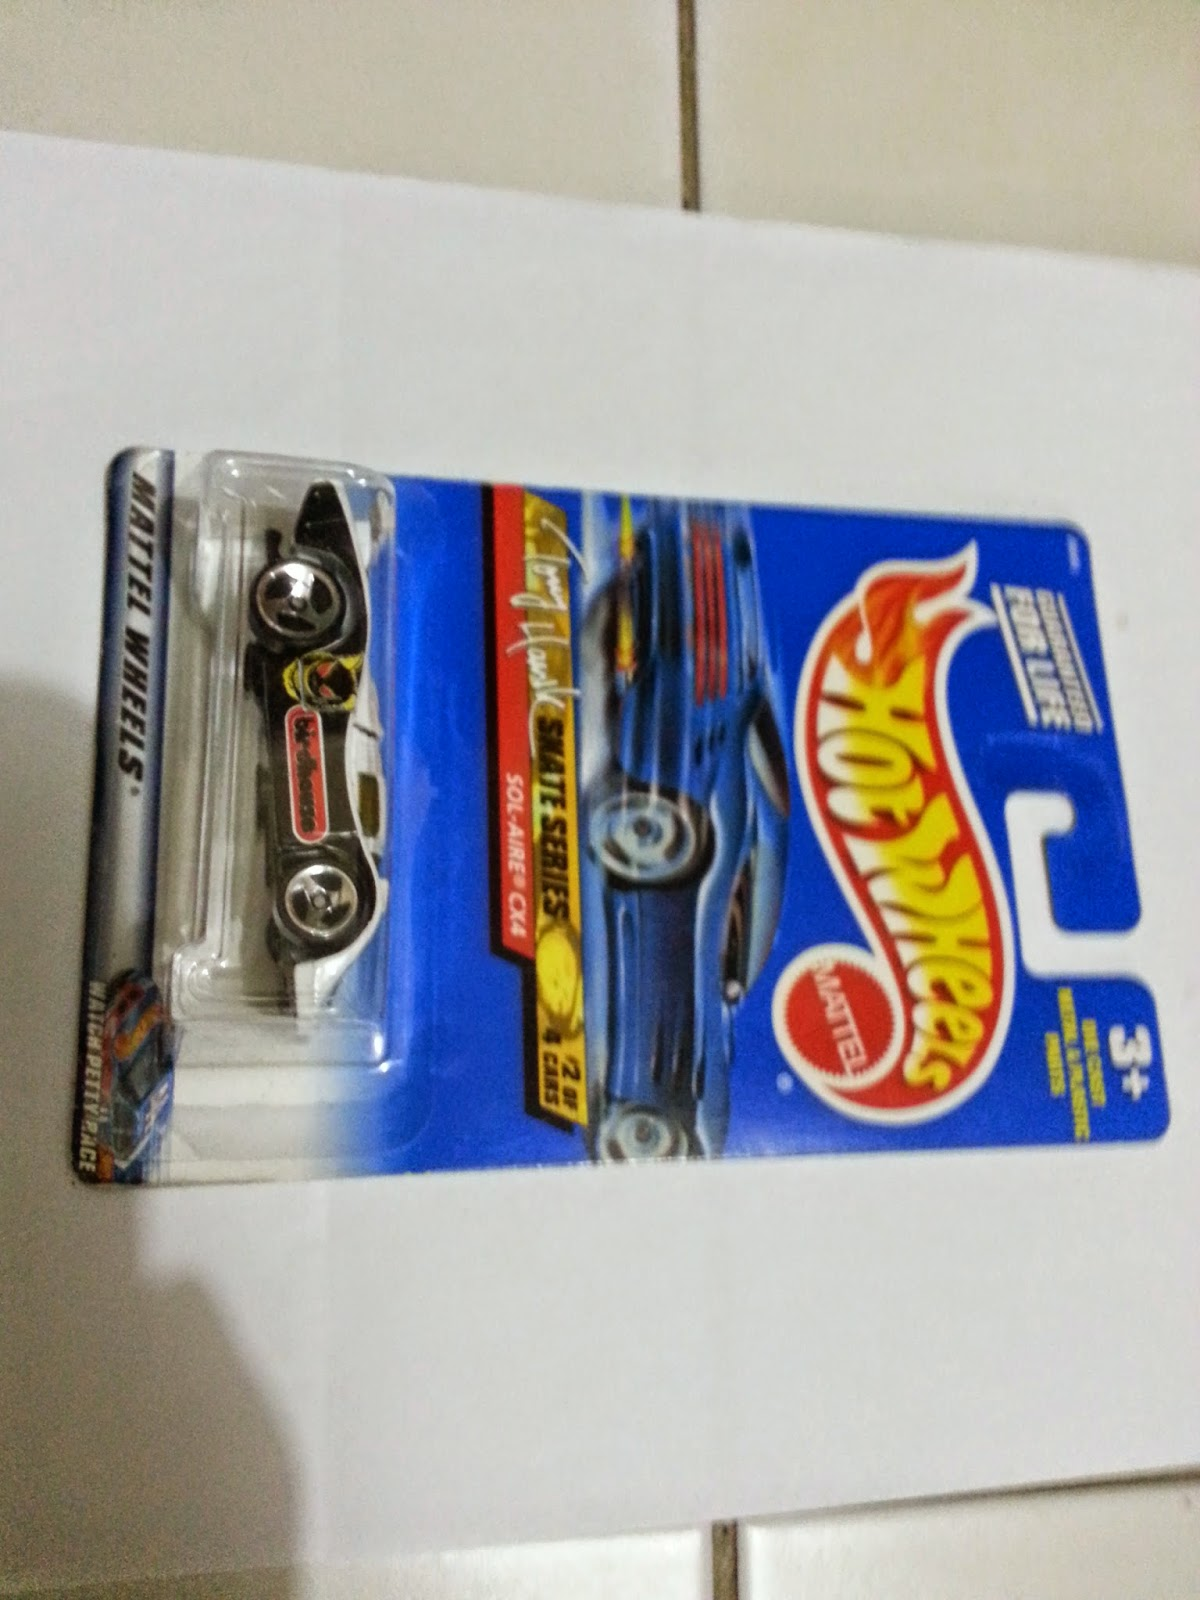 Hot Wheel Tony Hawk Skate Series Diecast